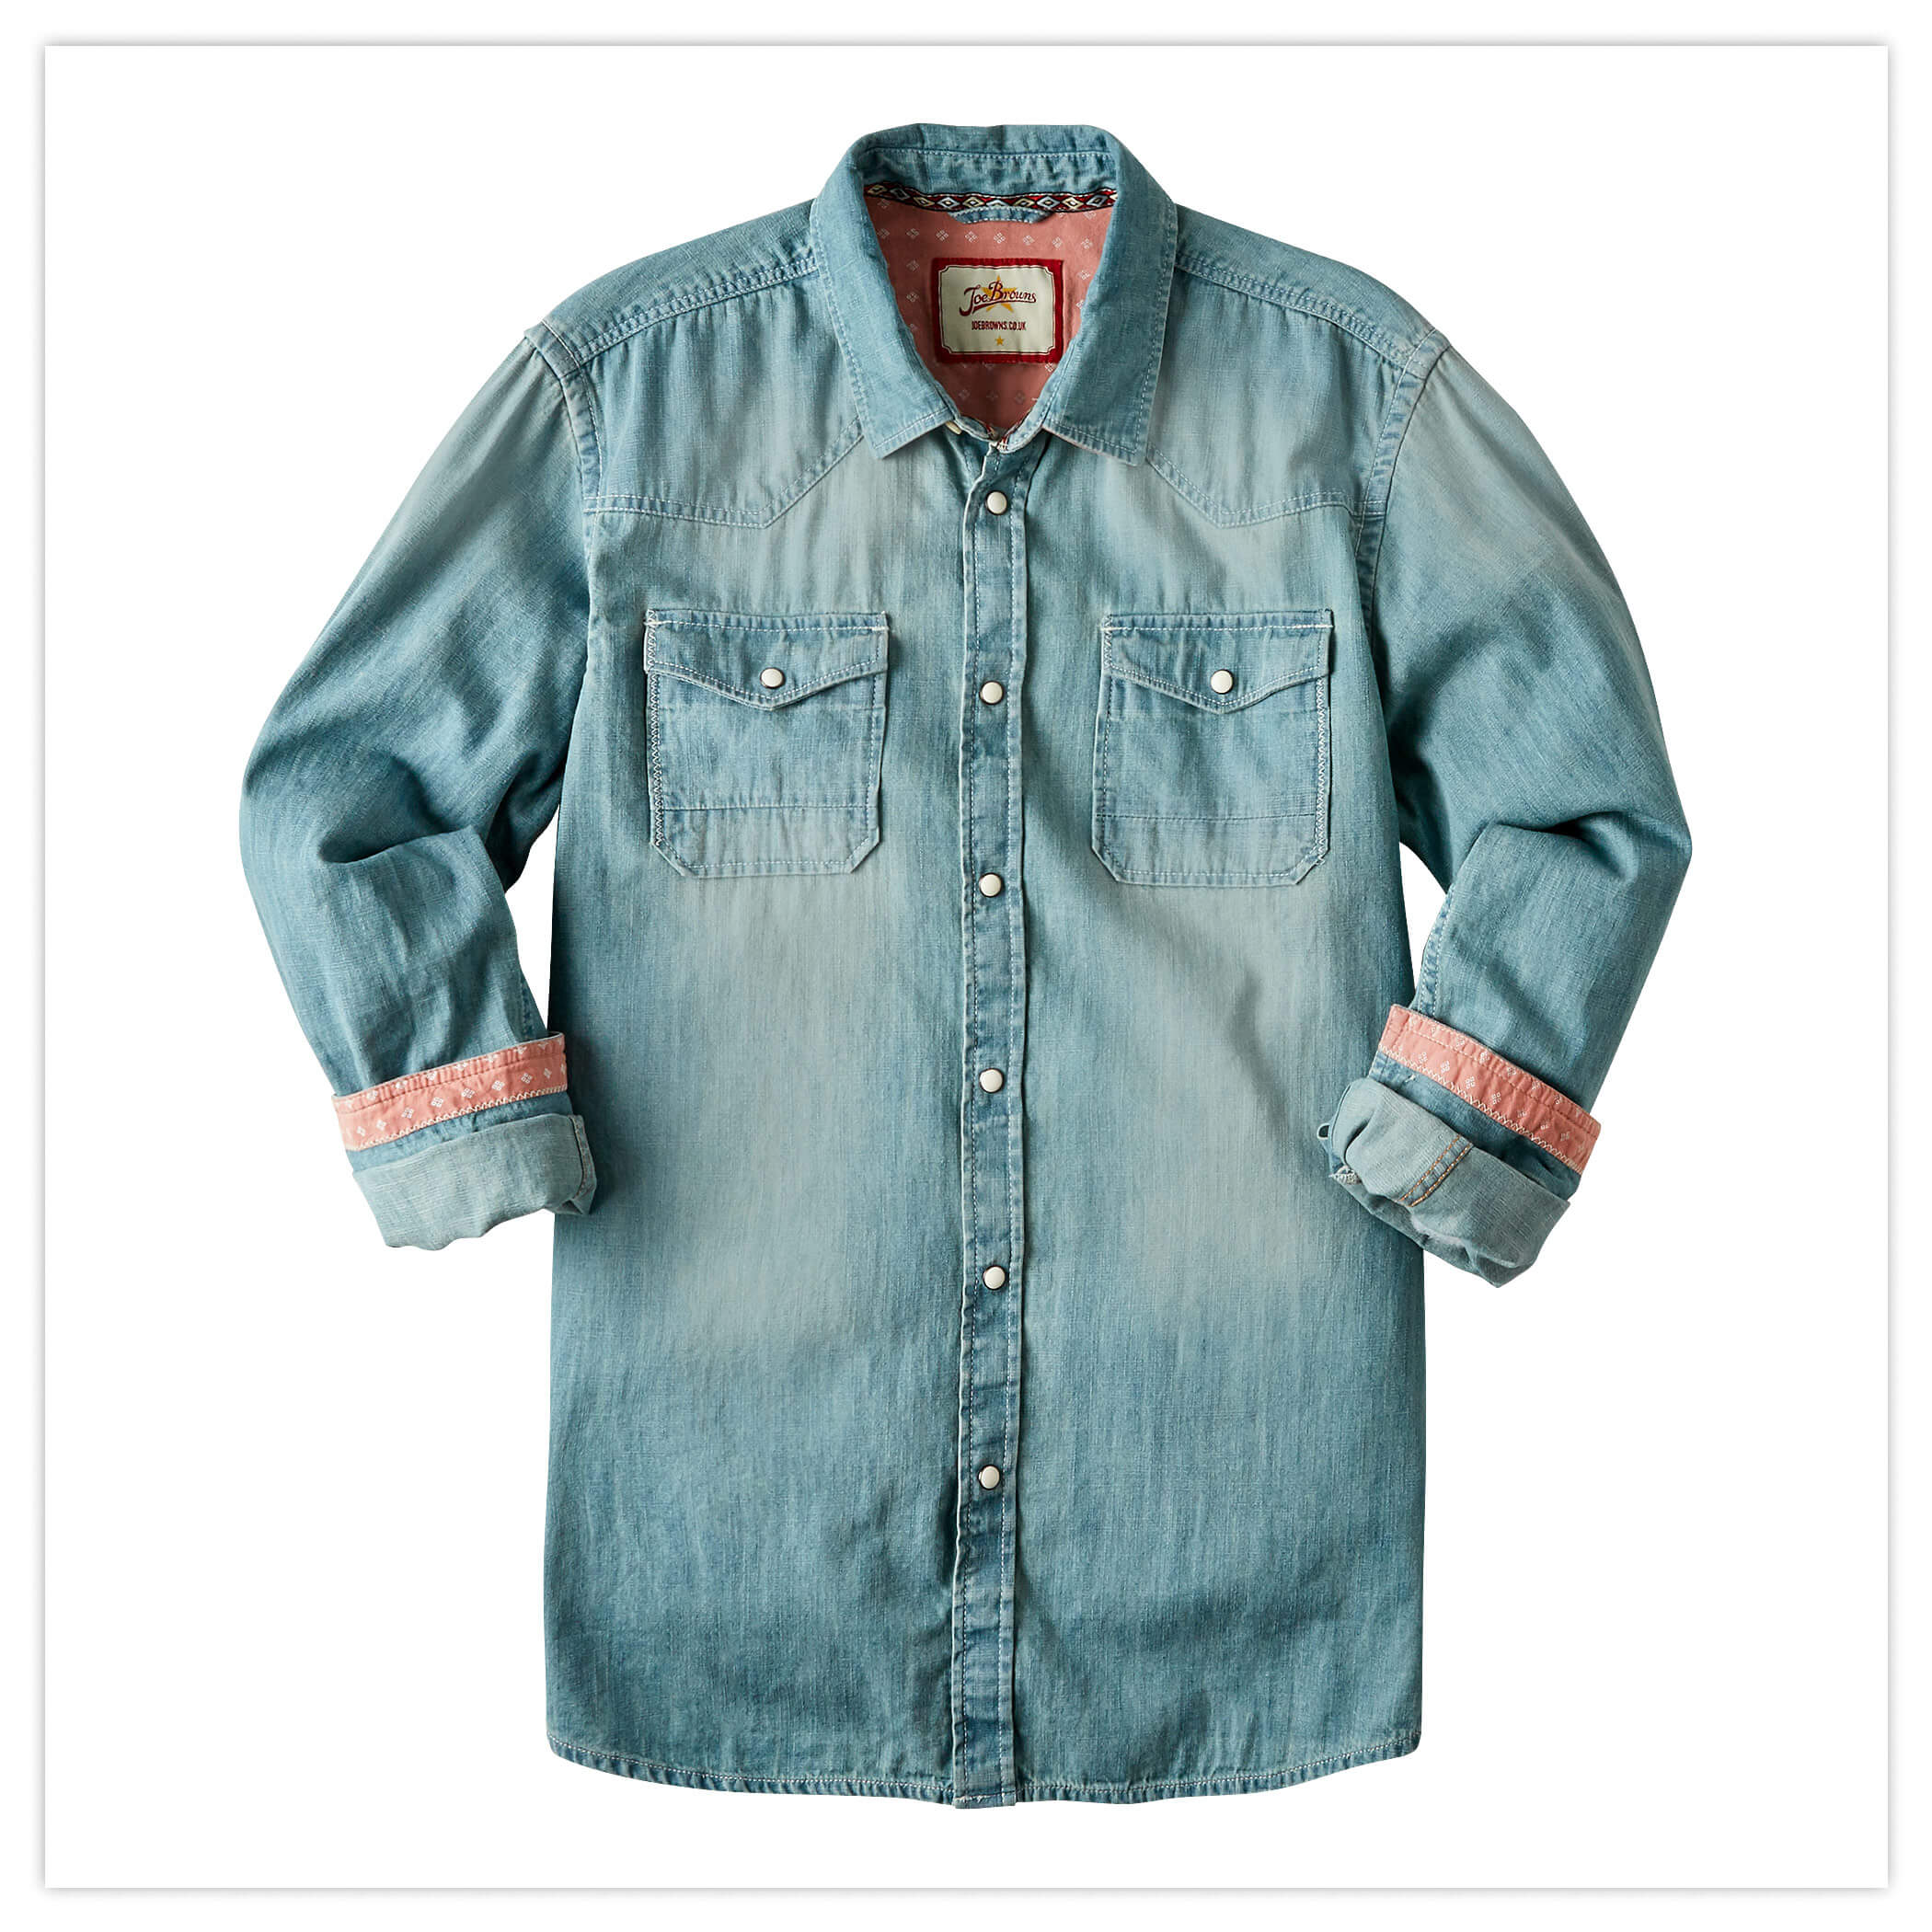 Customised Denim Shirt